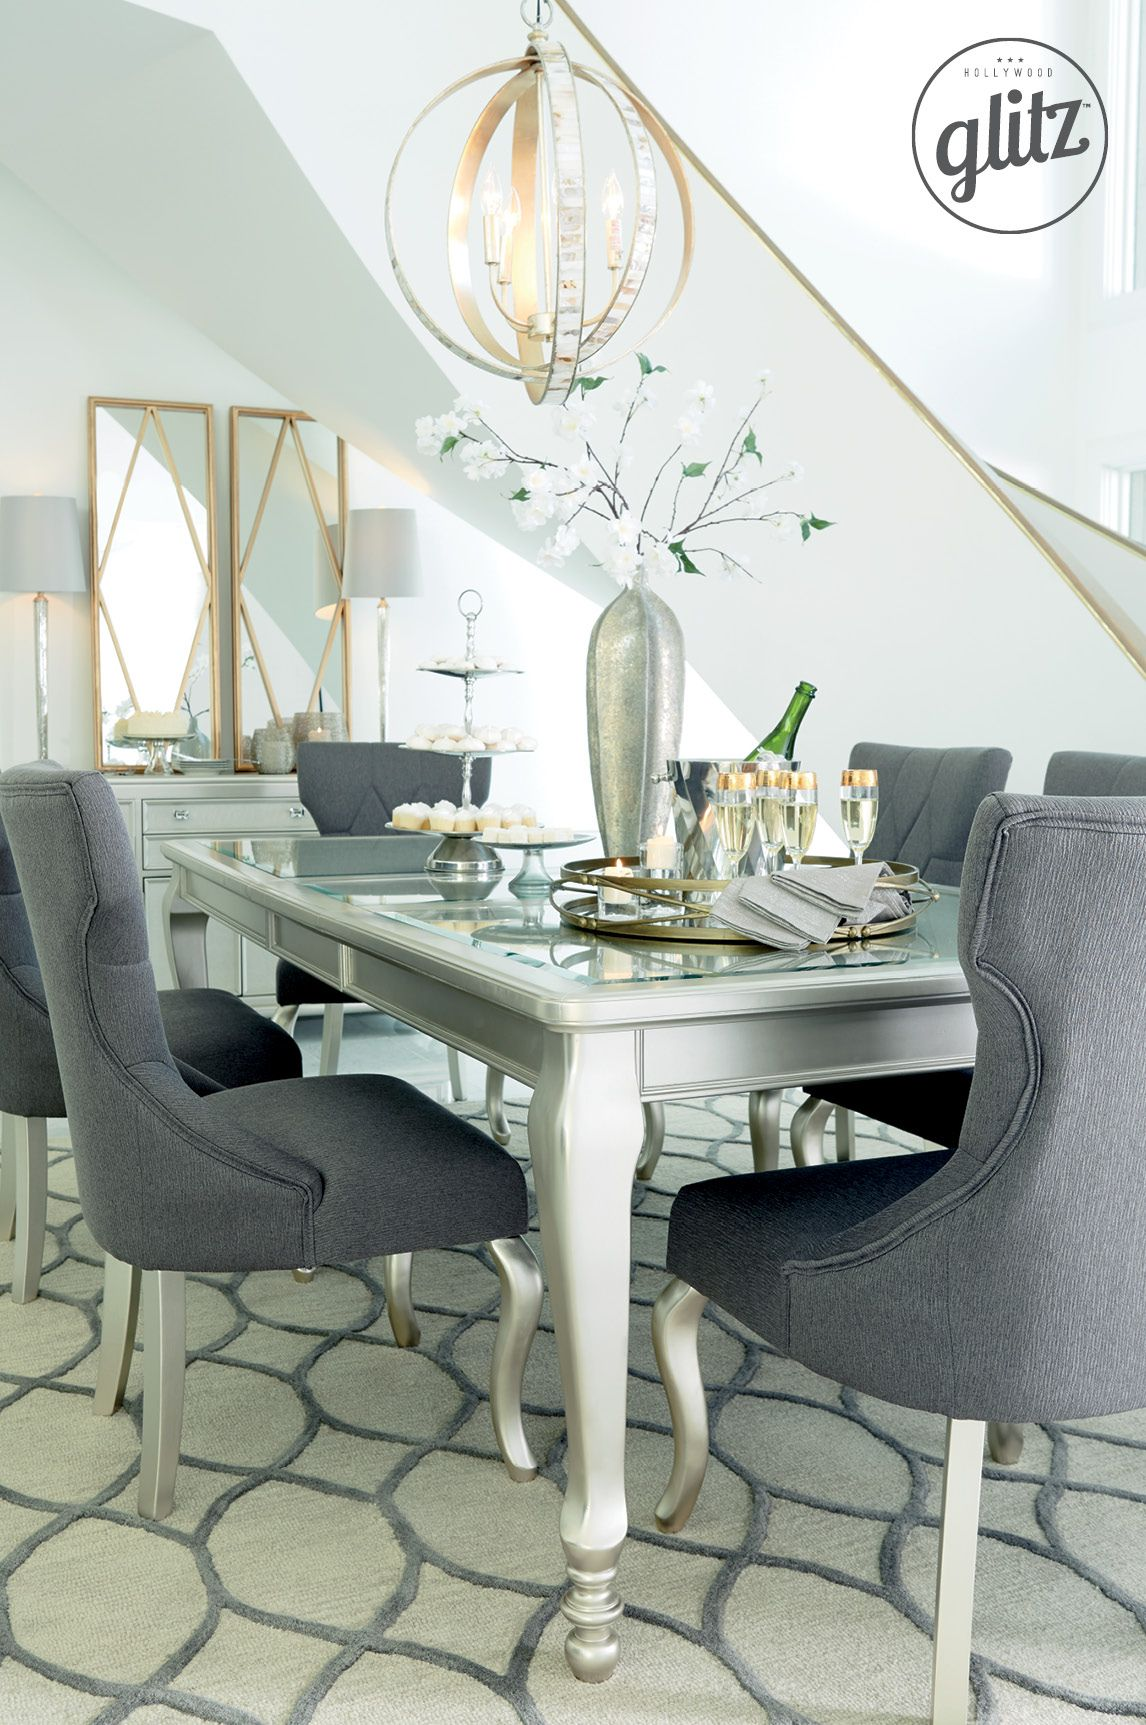 Think Gold And Silver Accents Curvy Chairs Chic Lines For The Perfect Dining Room Look Hollywood Glitz Signature Design By Ashley Furniture